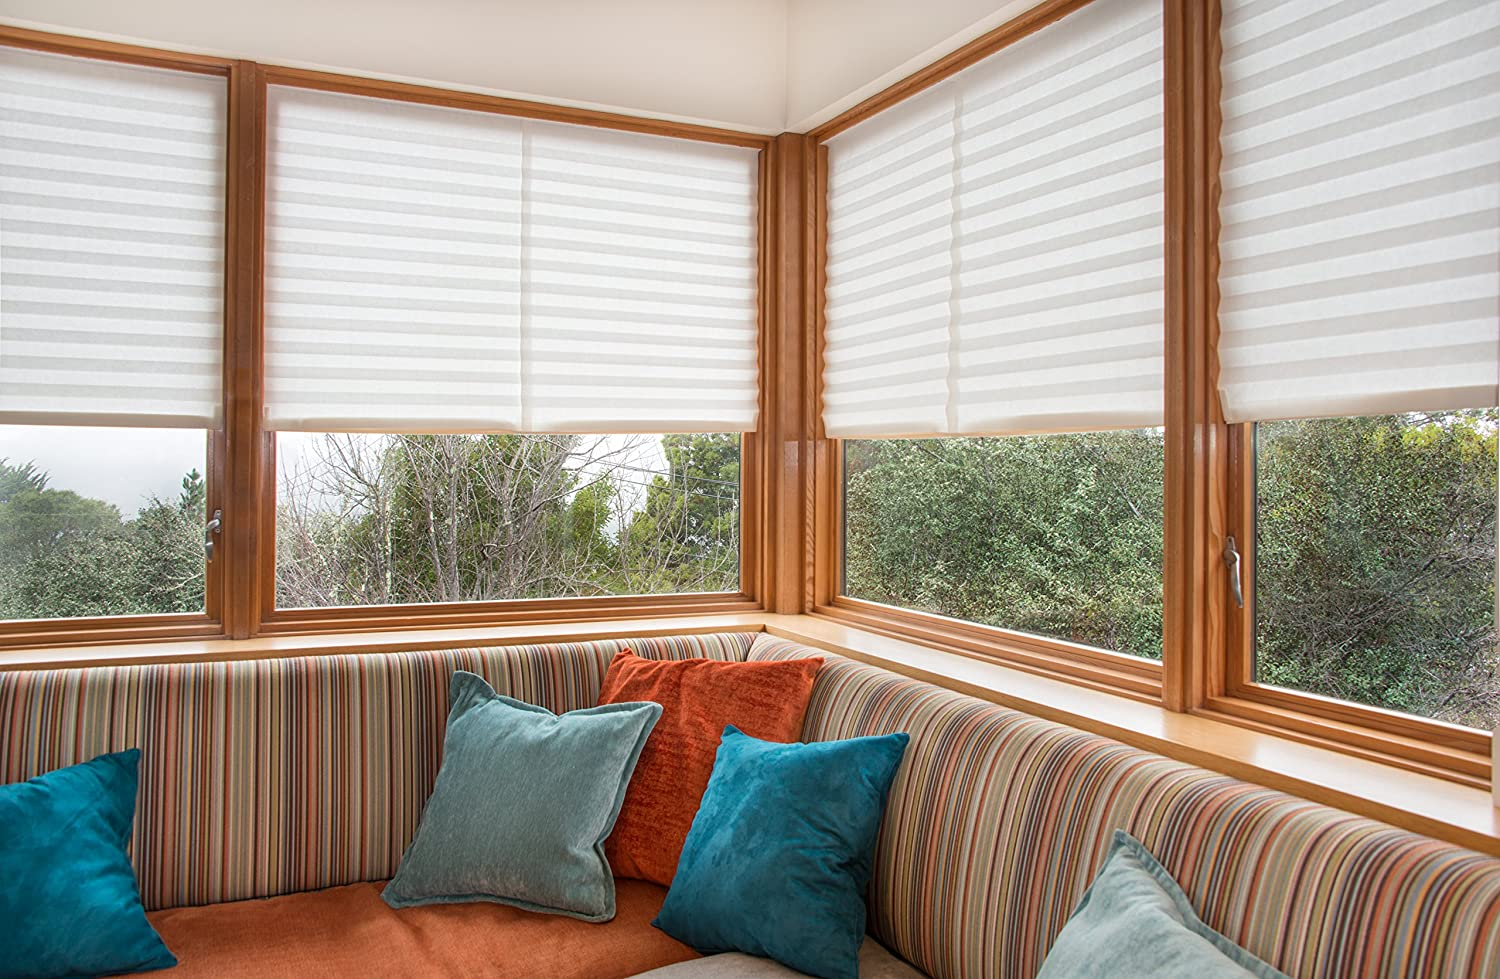 Redi Shade 1616204 Original Light Filtering Pleated Paper Shade, 36 in x 72 in, 6-pack, White